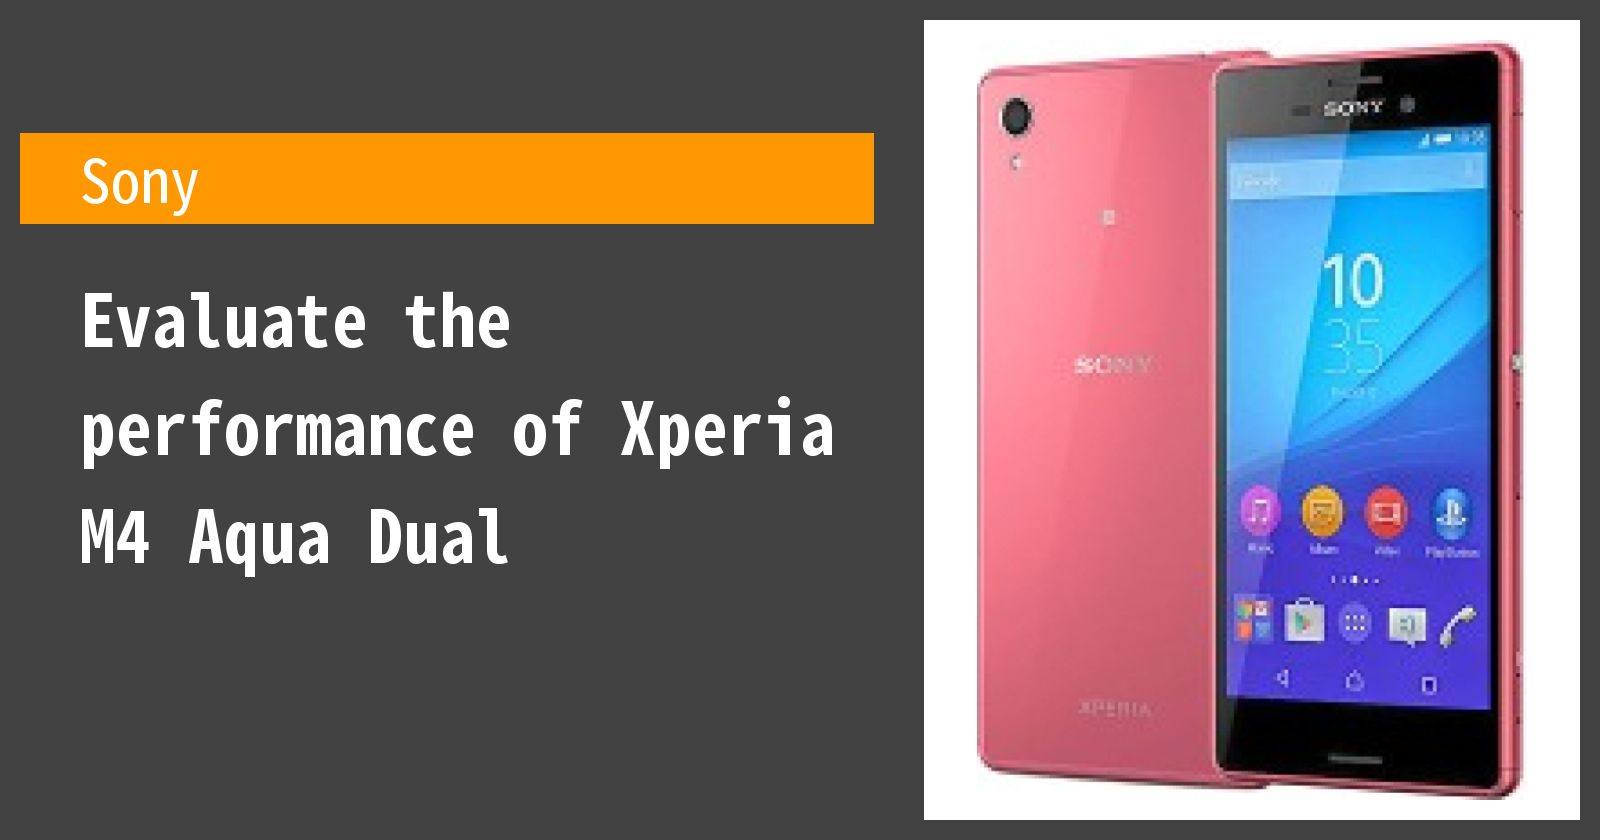 The Xperia M4 Aqua Dual Review Summary Of Specifications And Detailed Duals Features